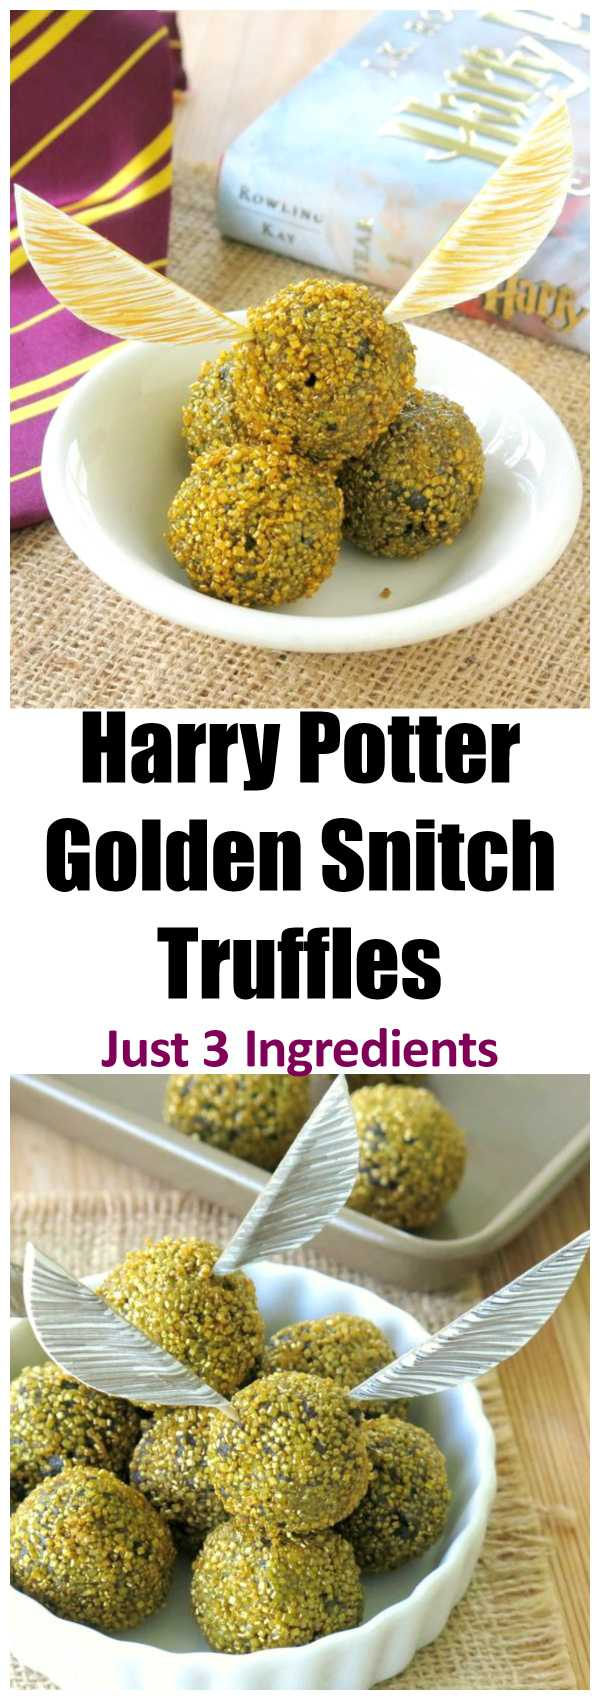 Harry Potter Golden Snitch Truffles Recipe - Just 3 Ingredients Plus Template for Paper Wings. Edible balls are perfect as a cake topper too. No bake with vegan option.